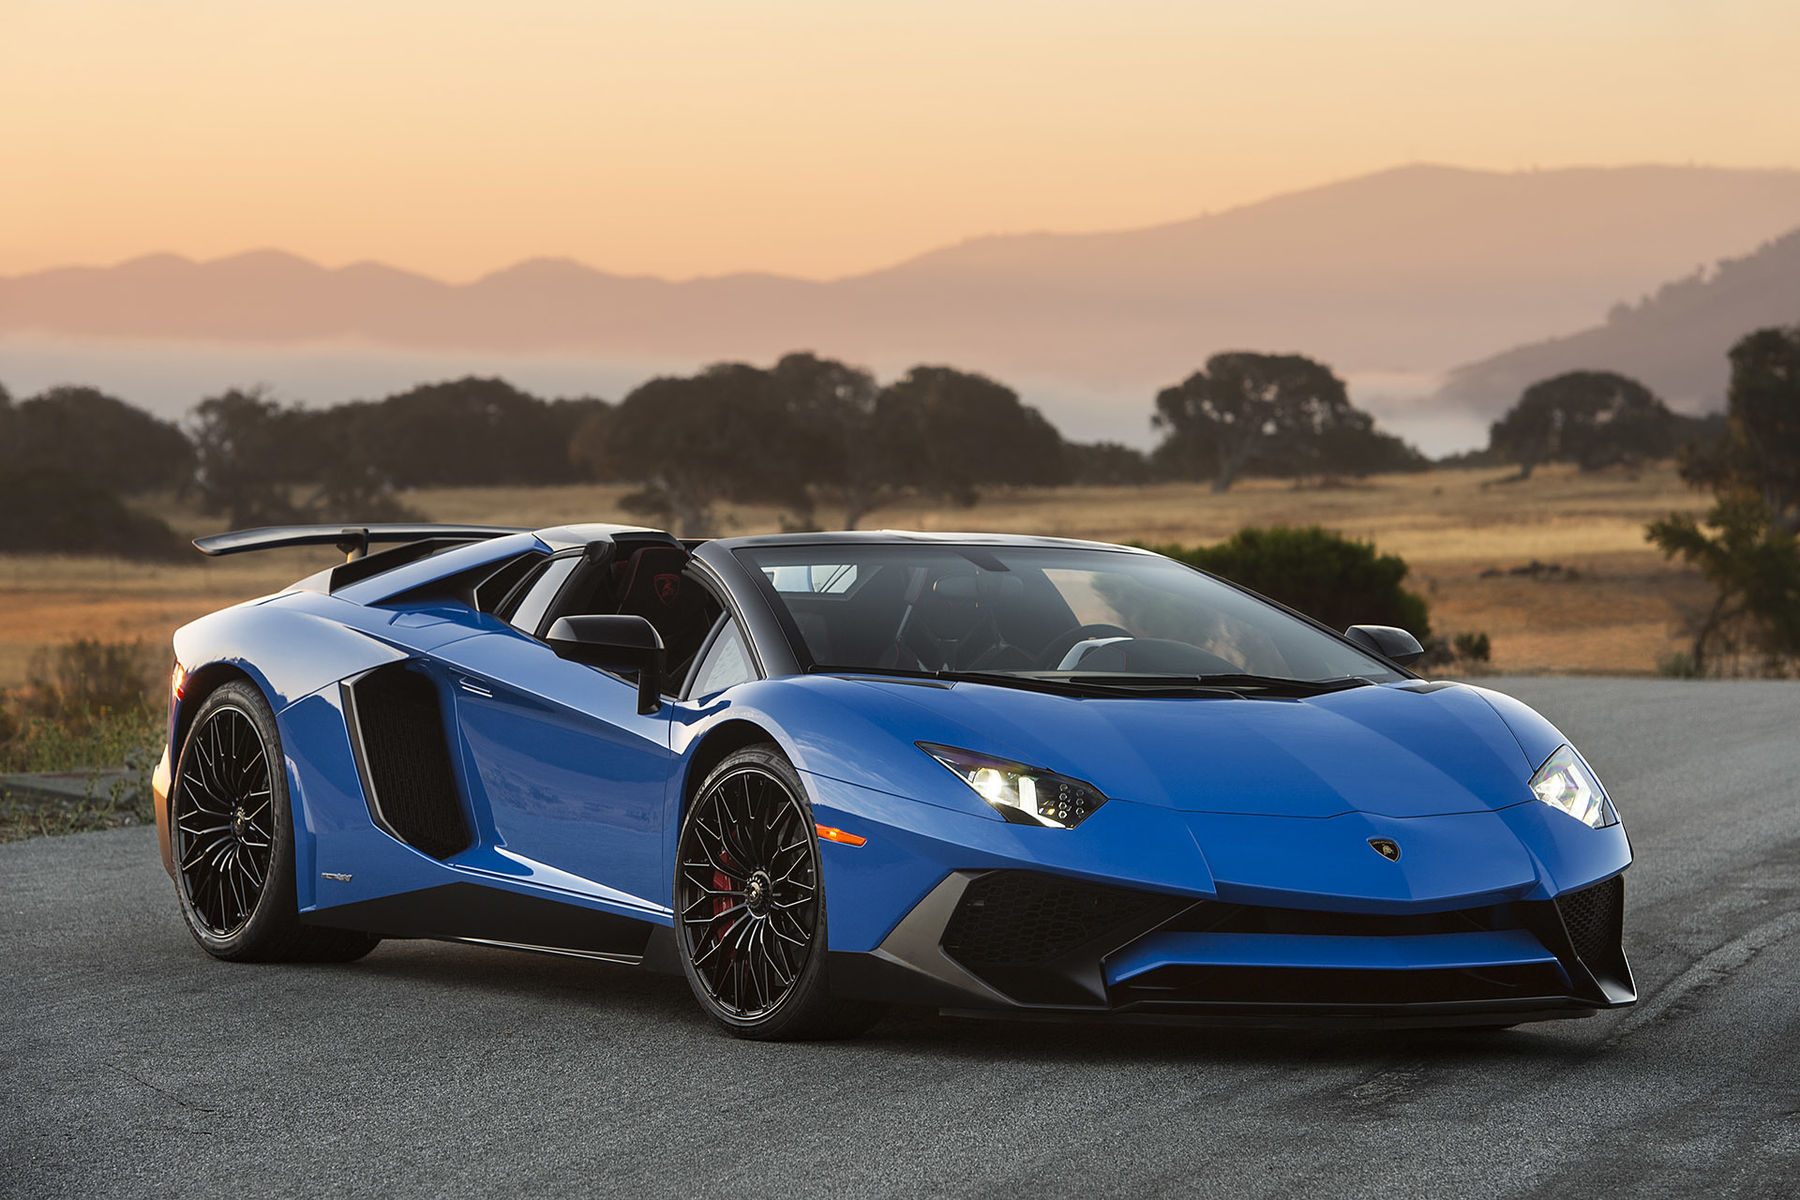 Autoblog S Exclusive Lamborghini Aventador Sv Roadster Photo Shoot